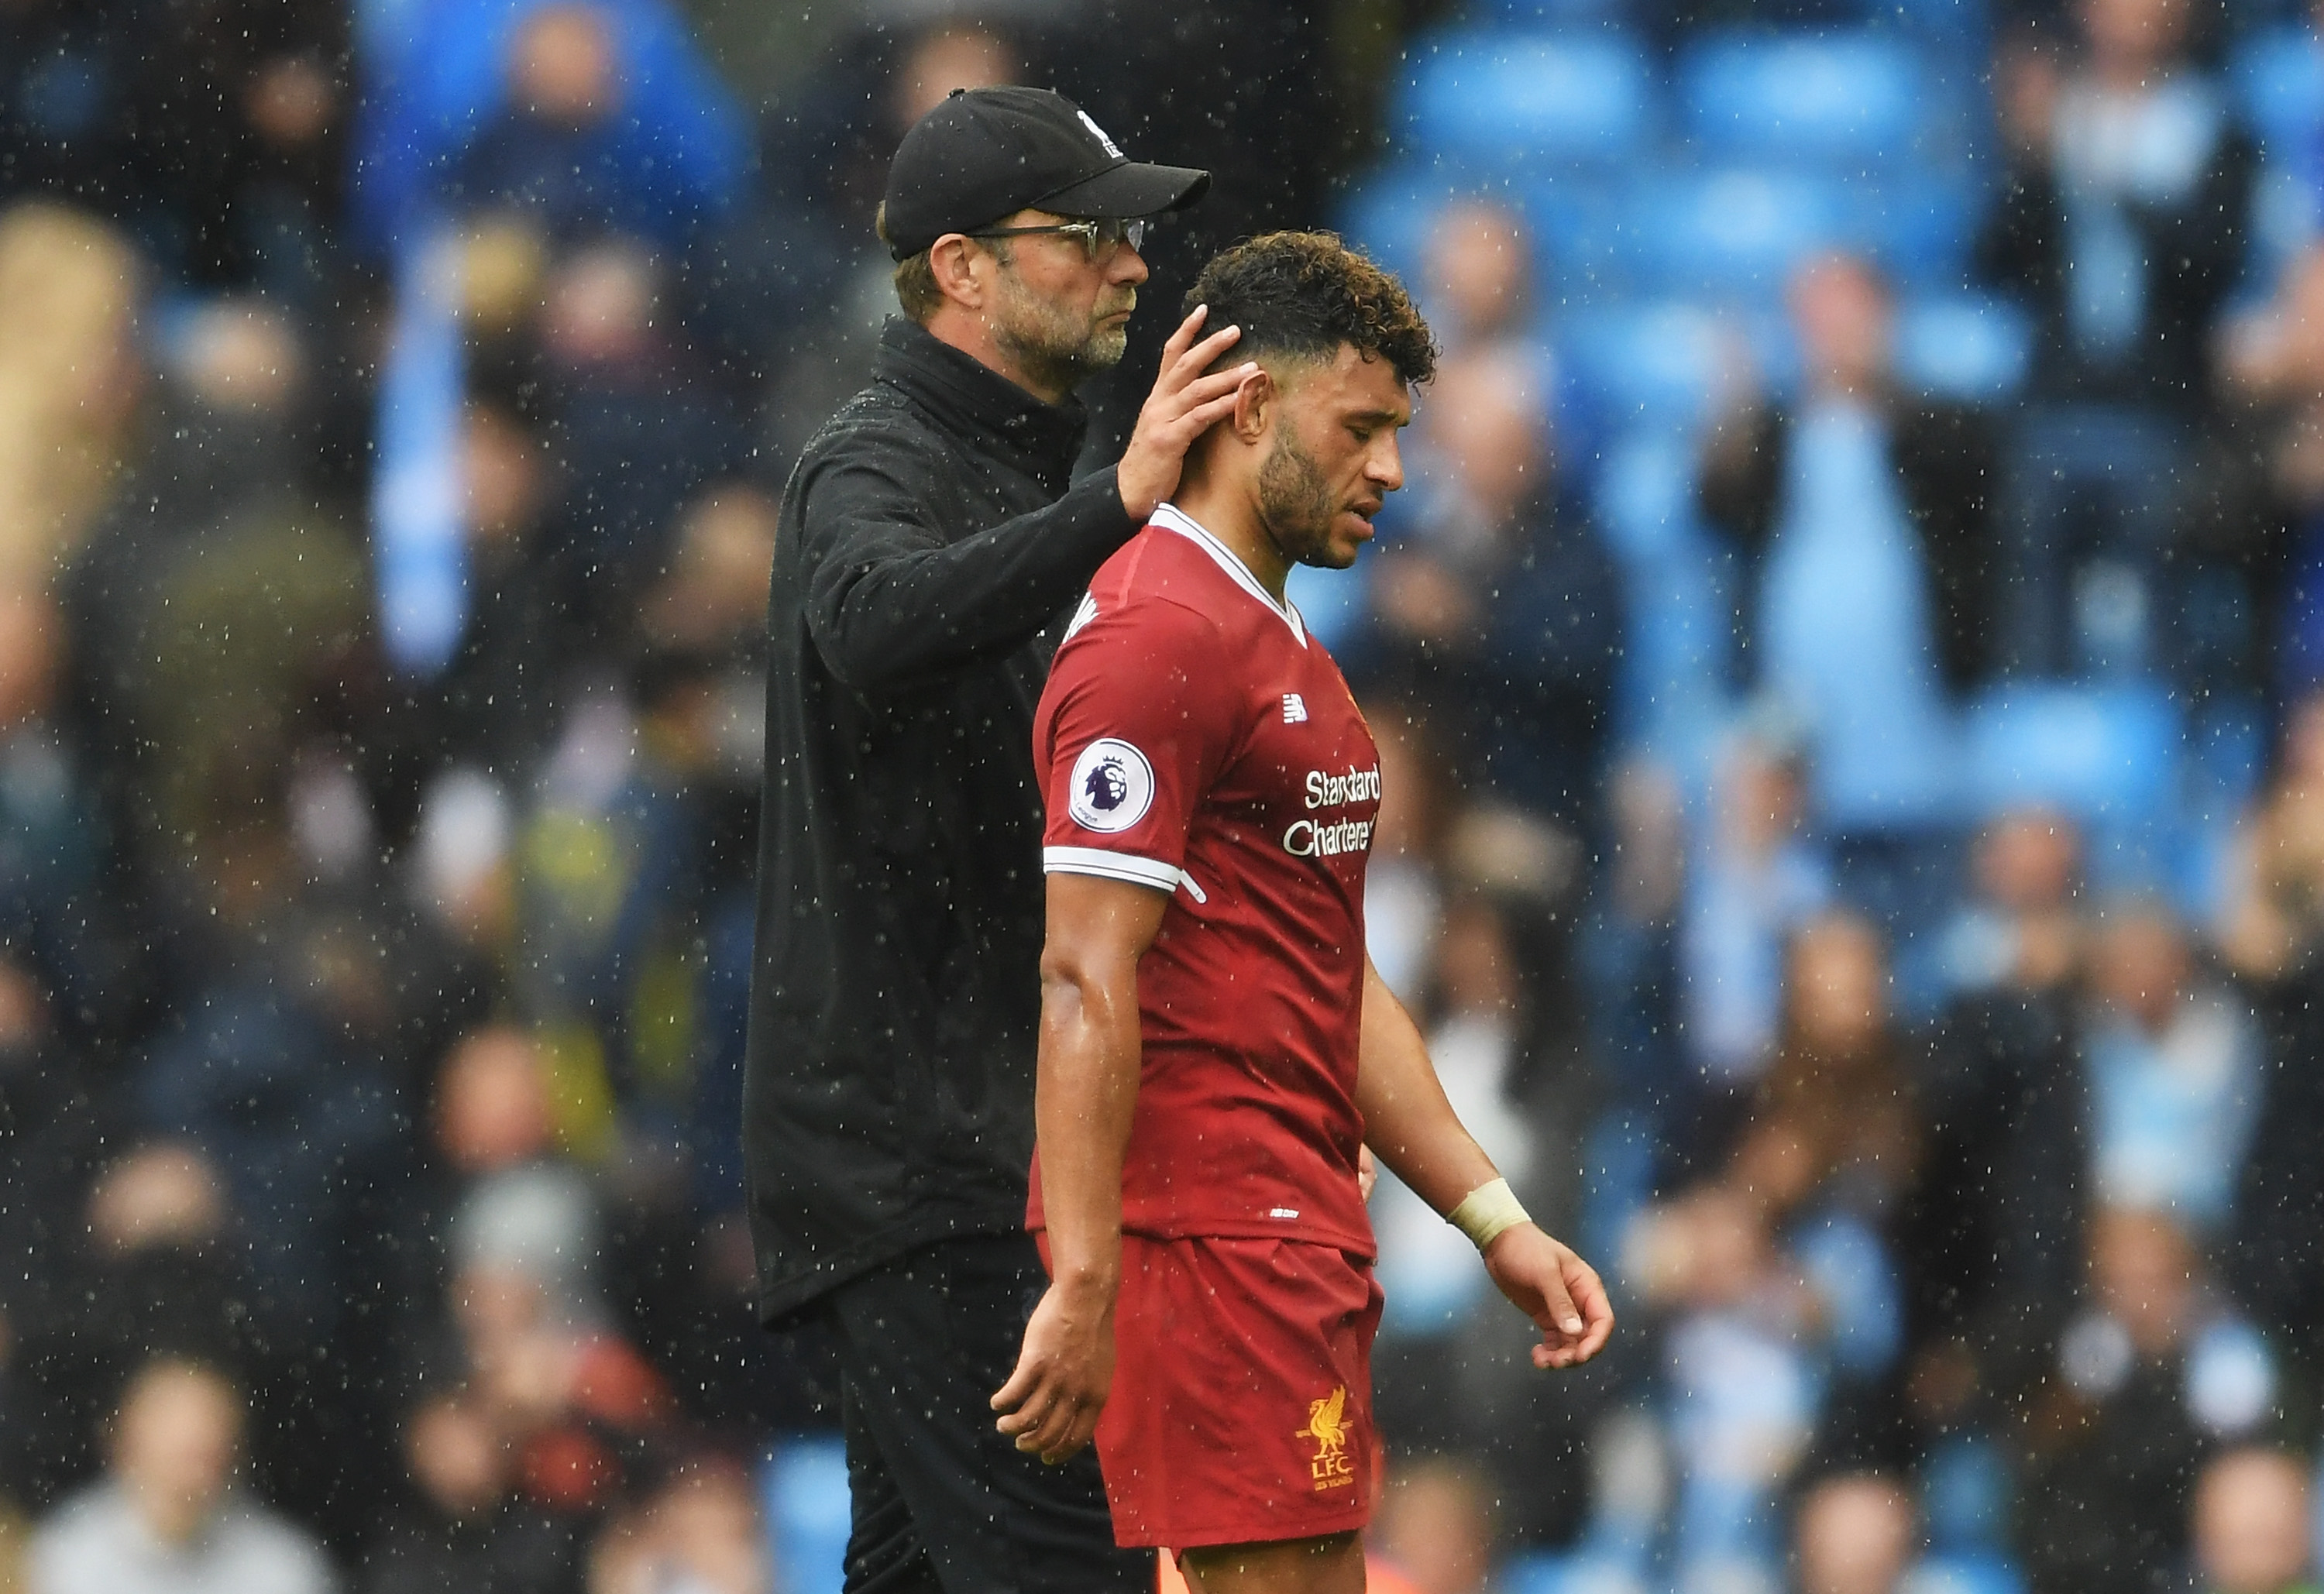 Arsene Wenger sends message to Liverpool FC fans about Alex Oxlade-Chamberlain